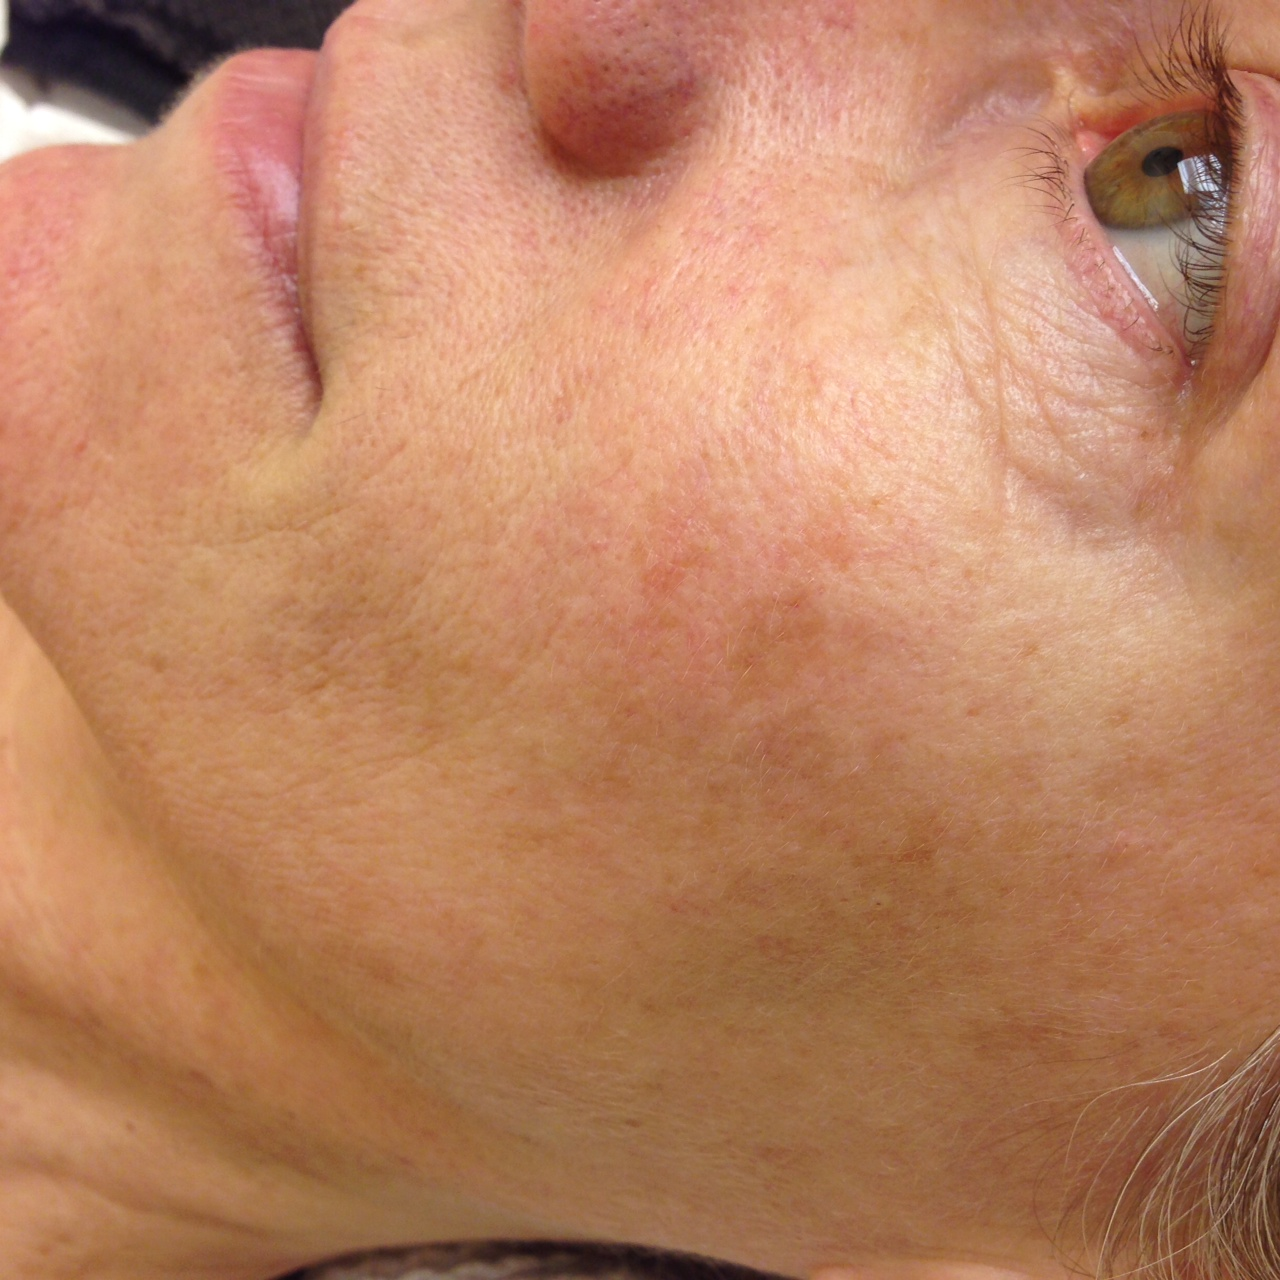 Rosacea+On+Neck+And+Chest Rosacea On Chest And Neck Ipl photofacial ...